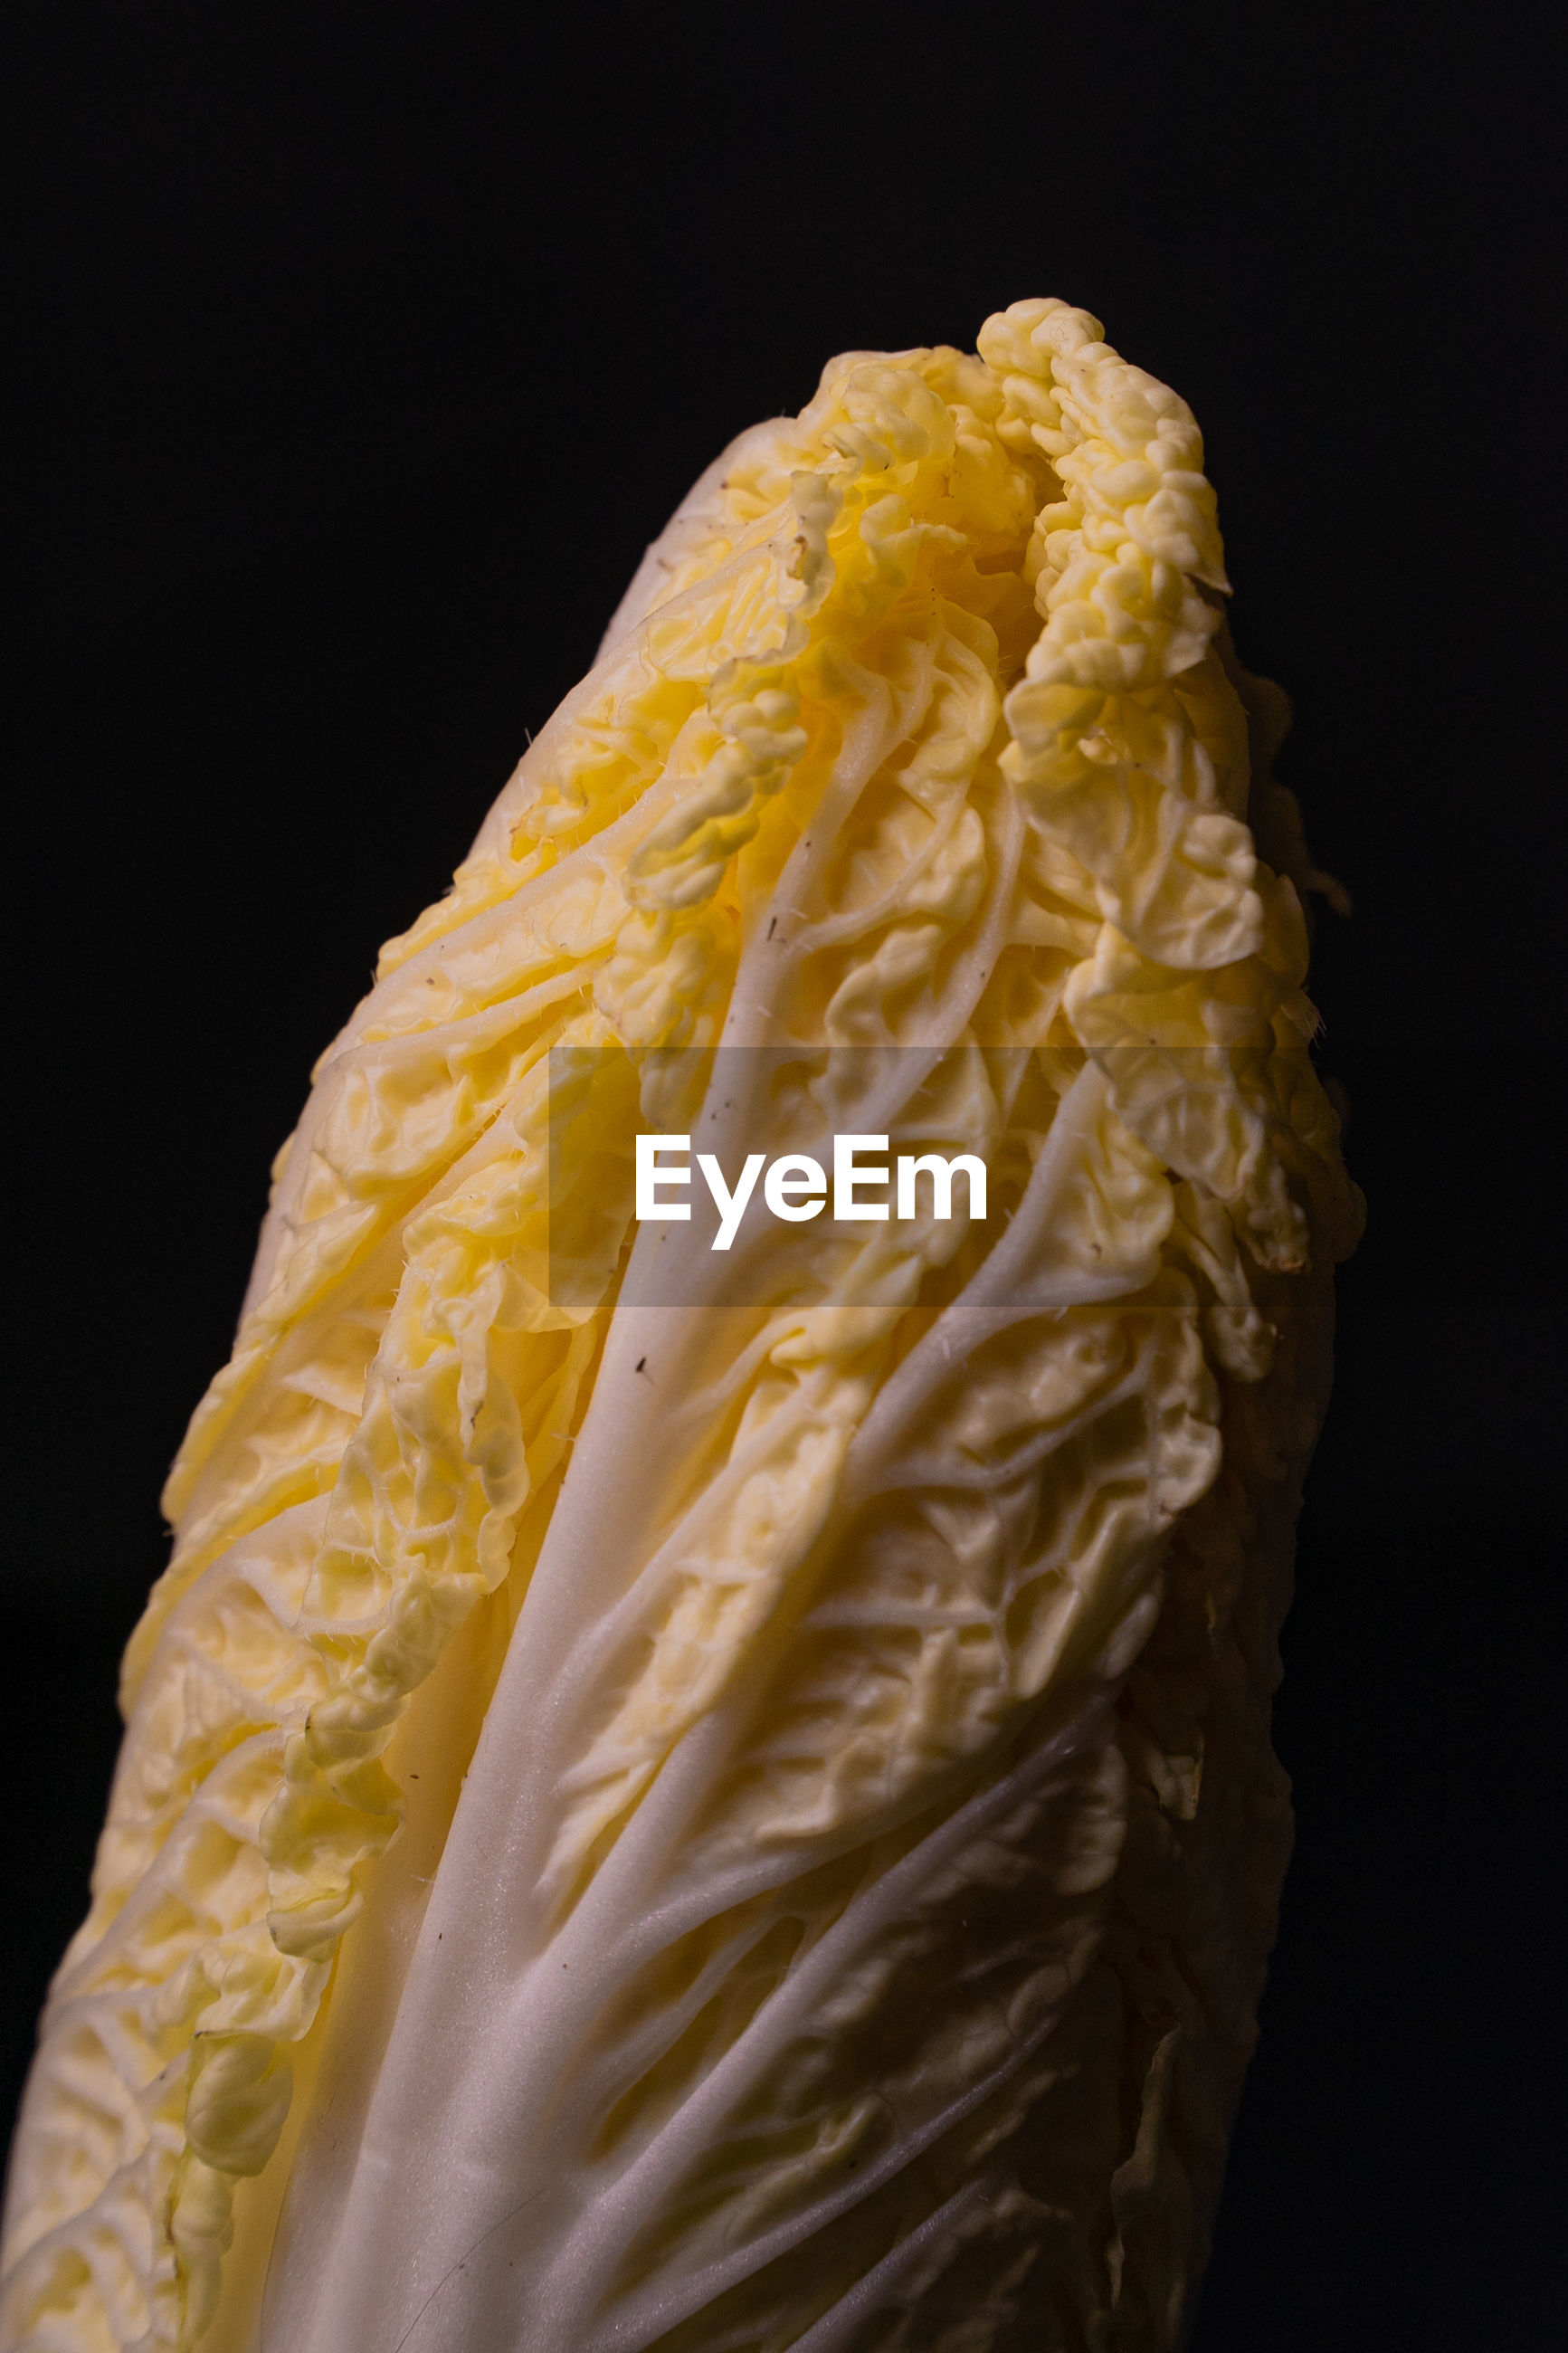 CLOSE-UP OF YELLOW CAKE AGAINST BLACK BACKGROUND